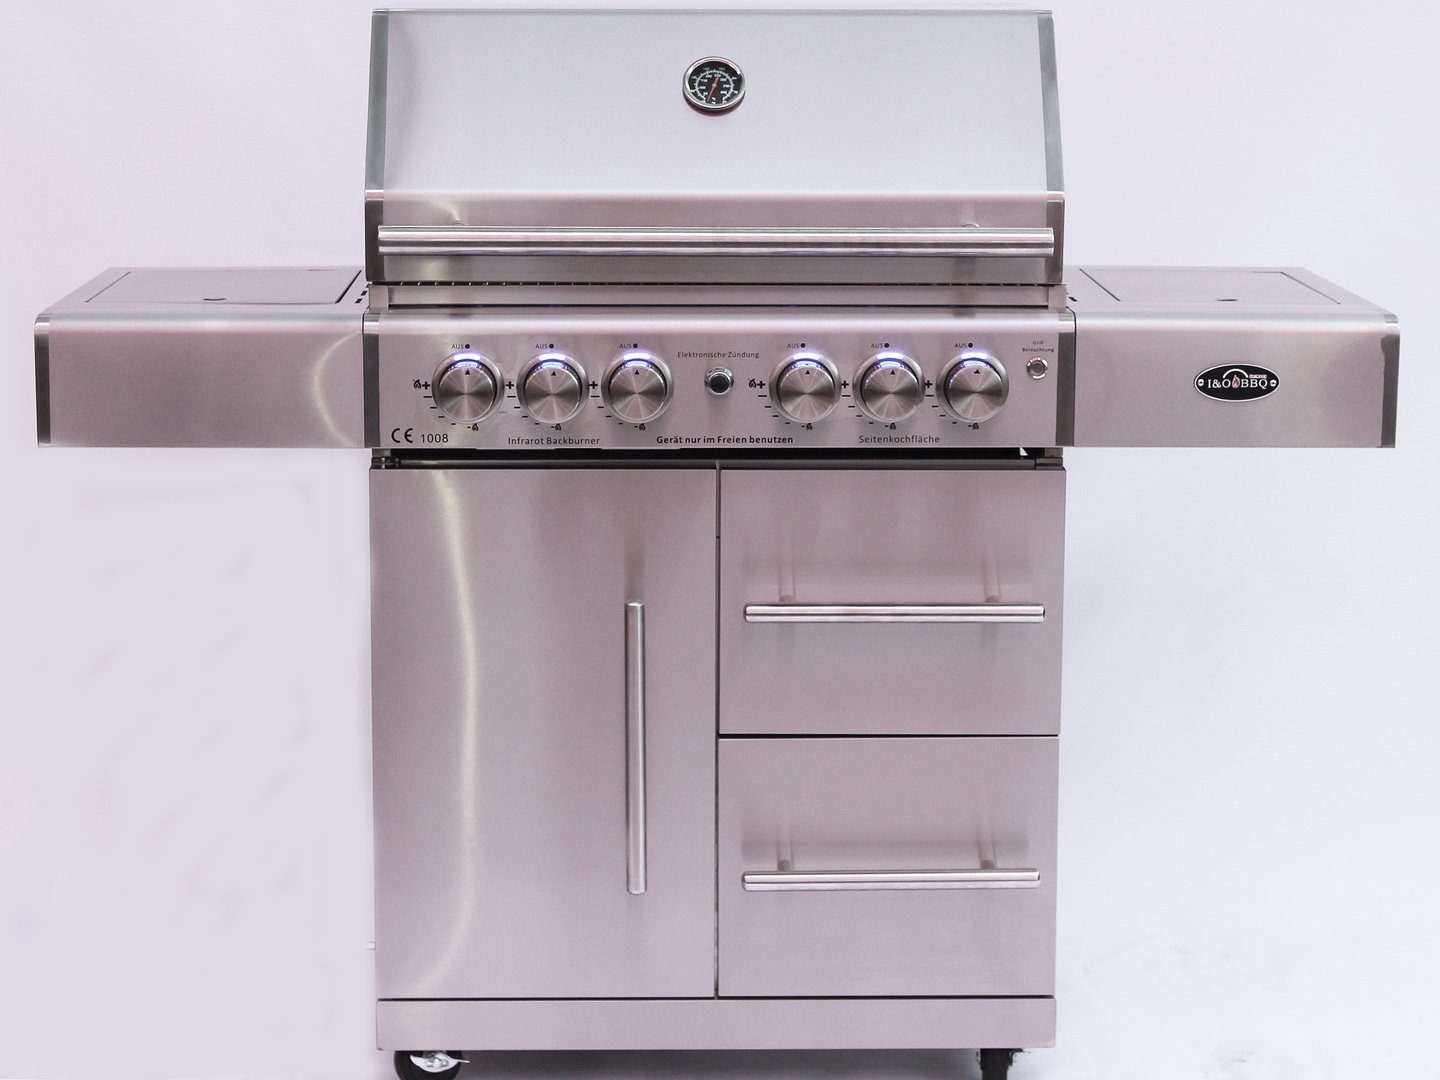 "i&o bbq® i&o4s edelstahl gasgrill ""next generation"" (vorbesteller aktion  april 2019)"